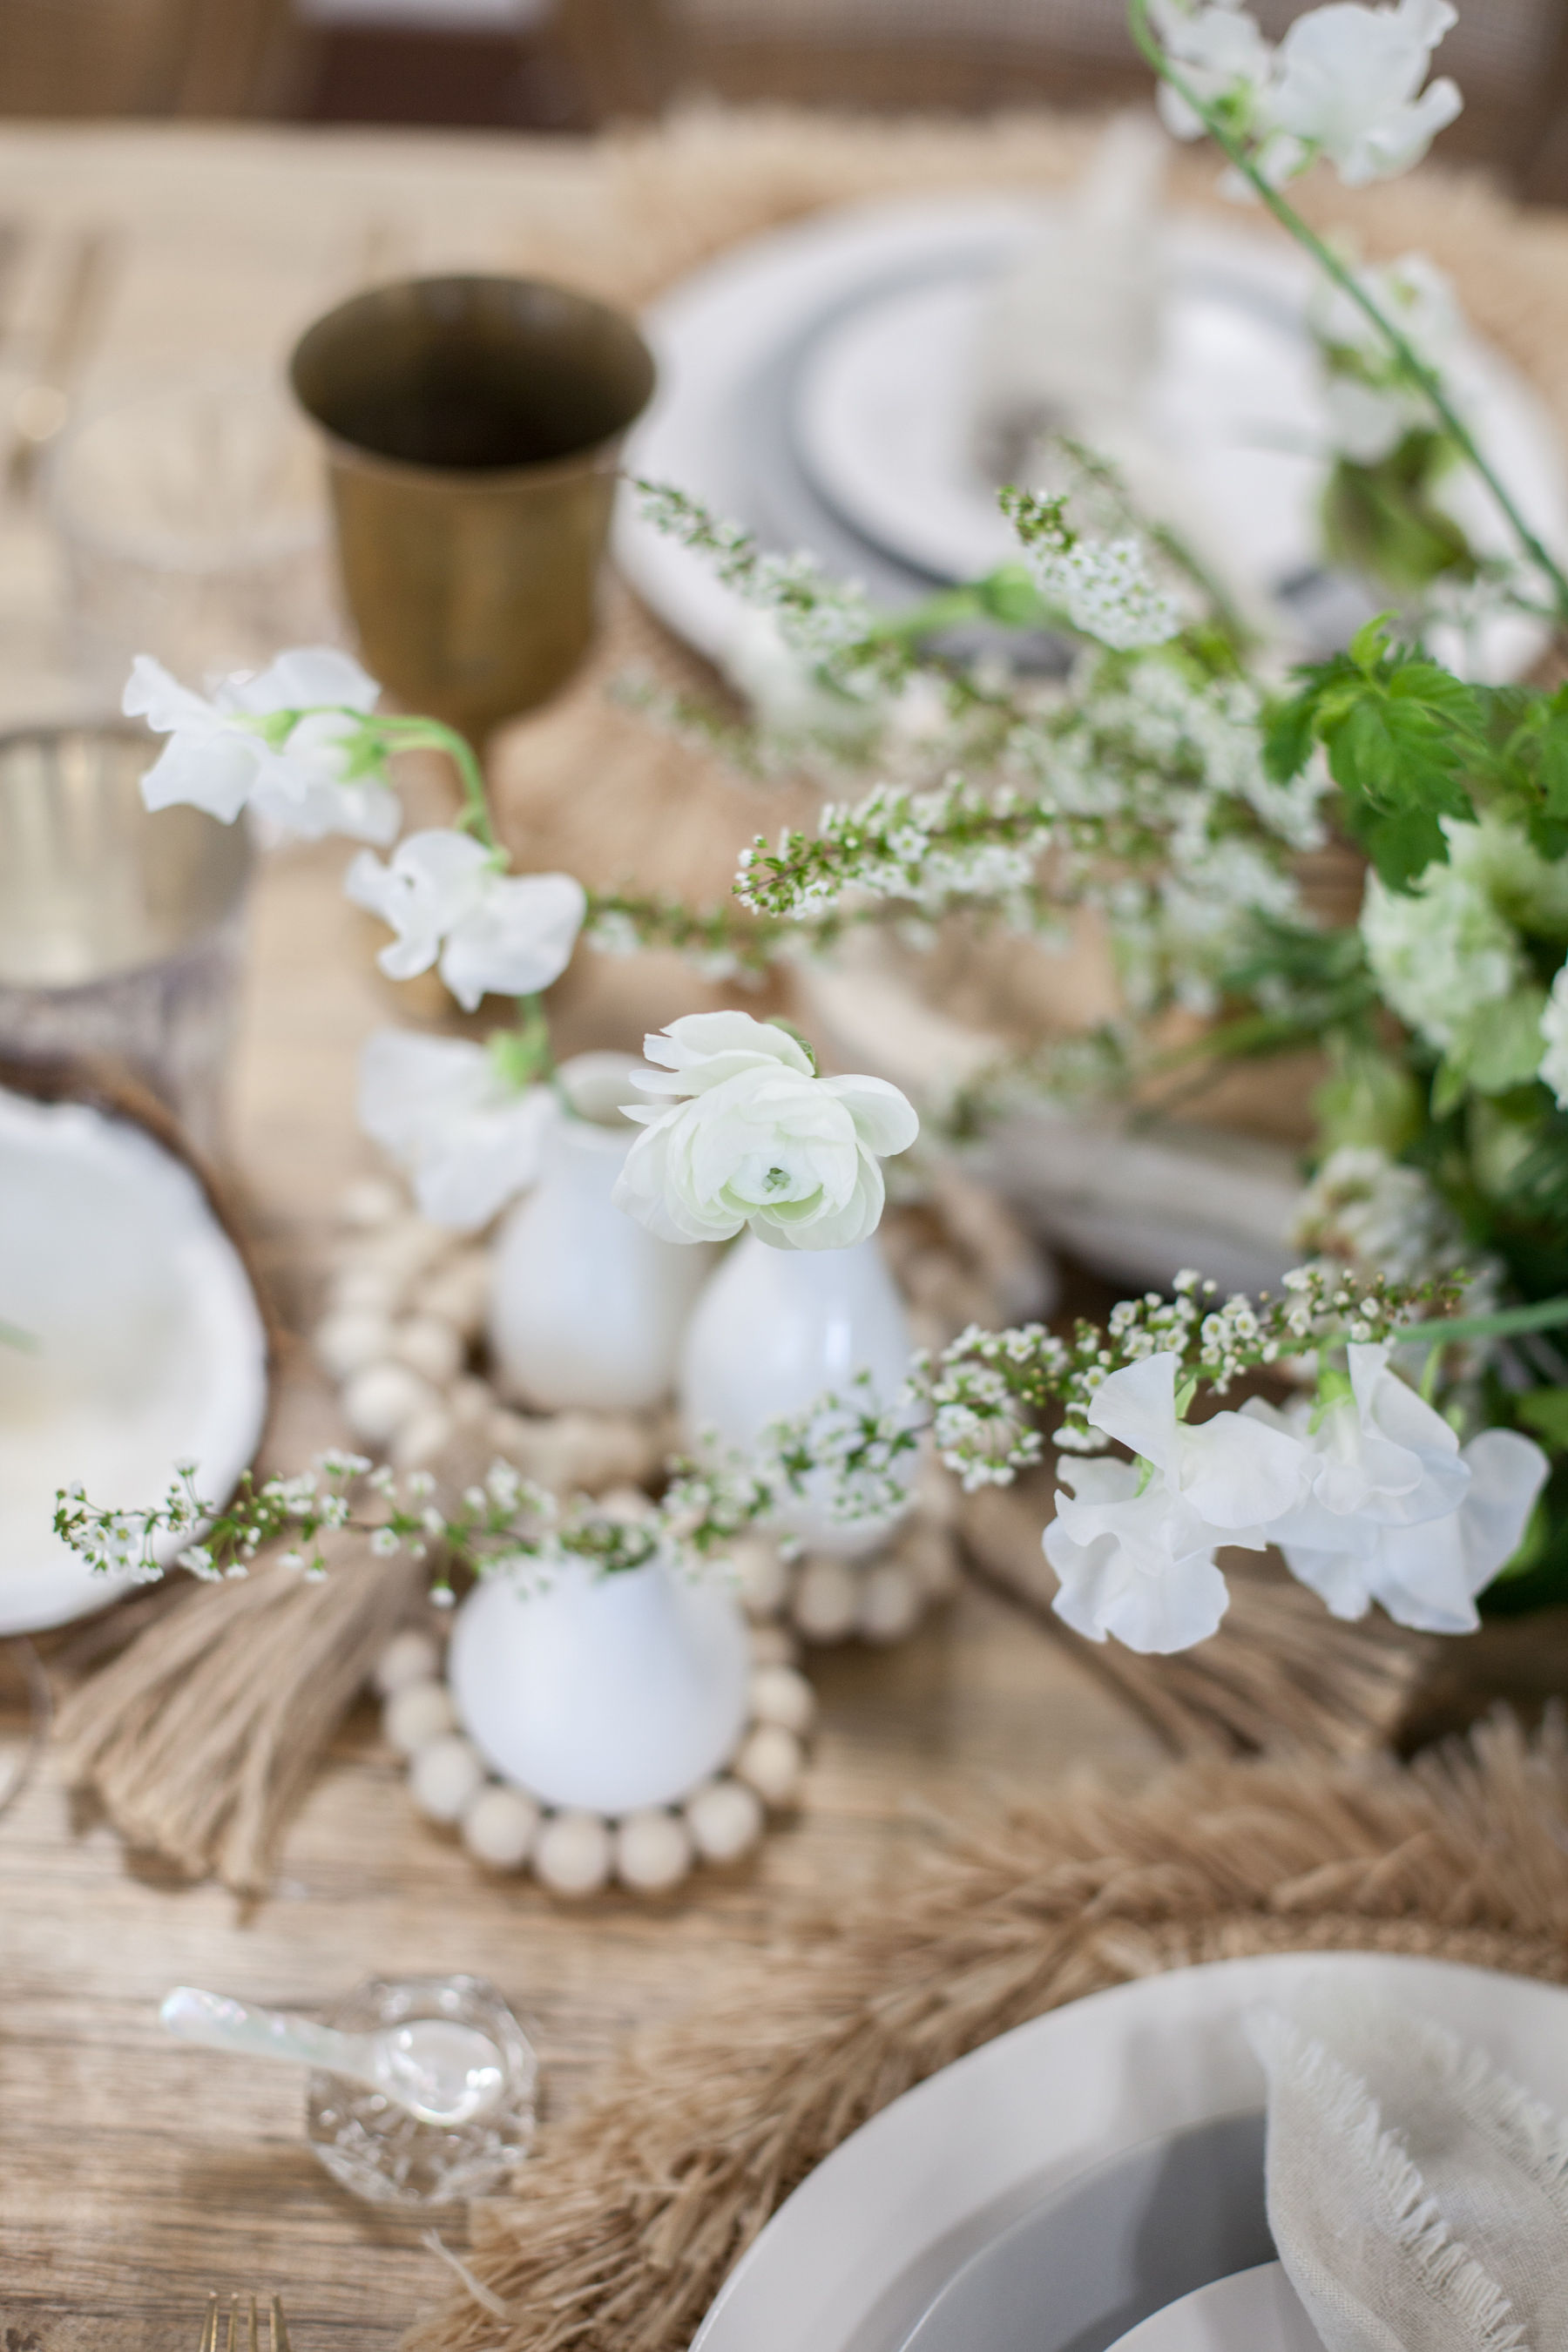 Wooden beads and white bud vases